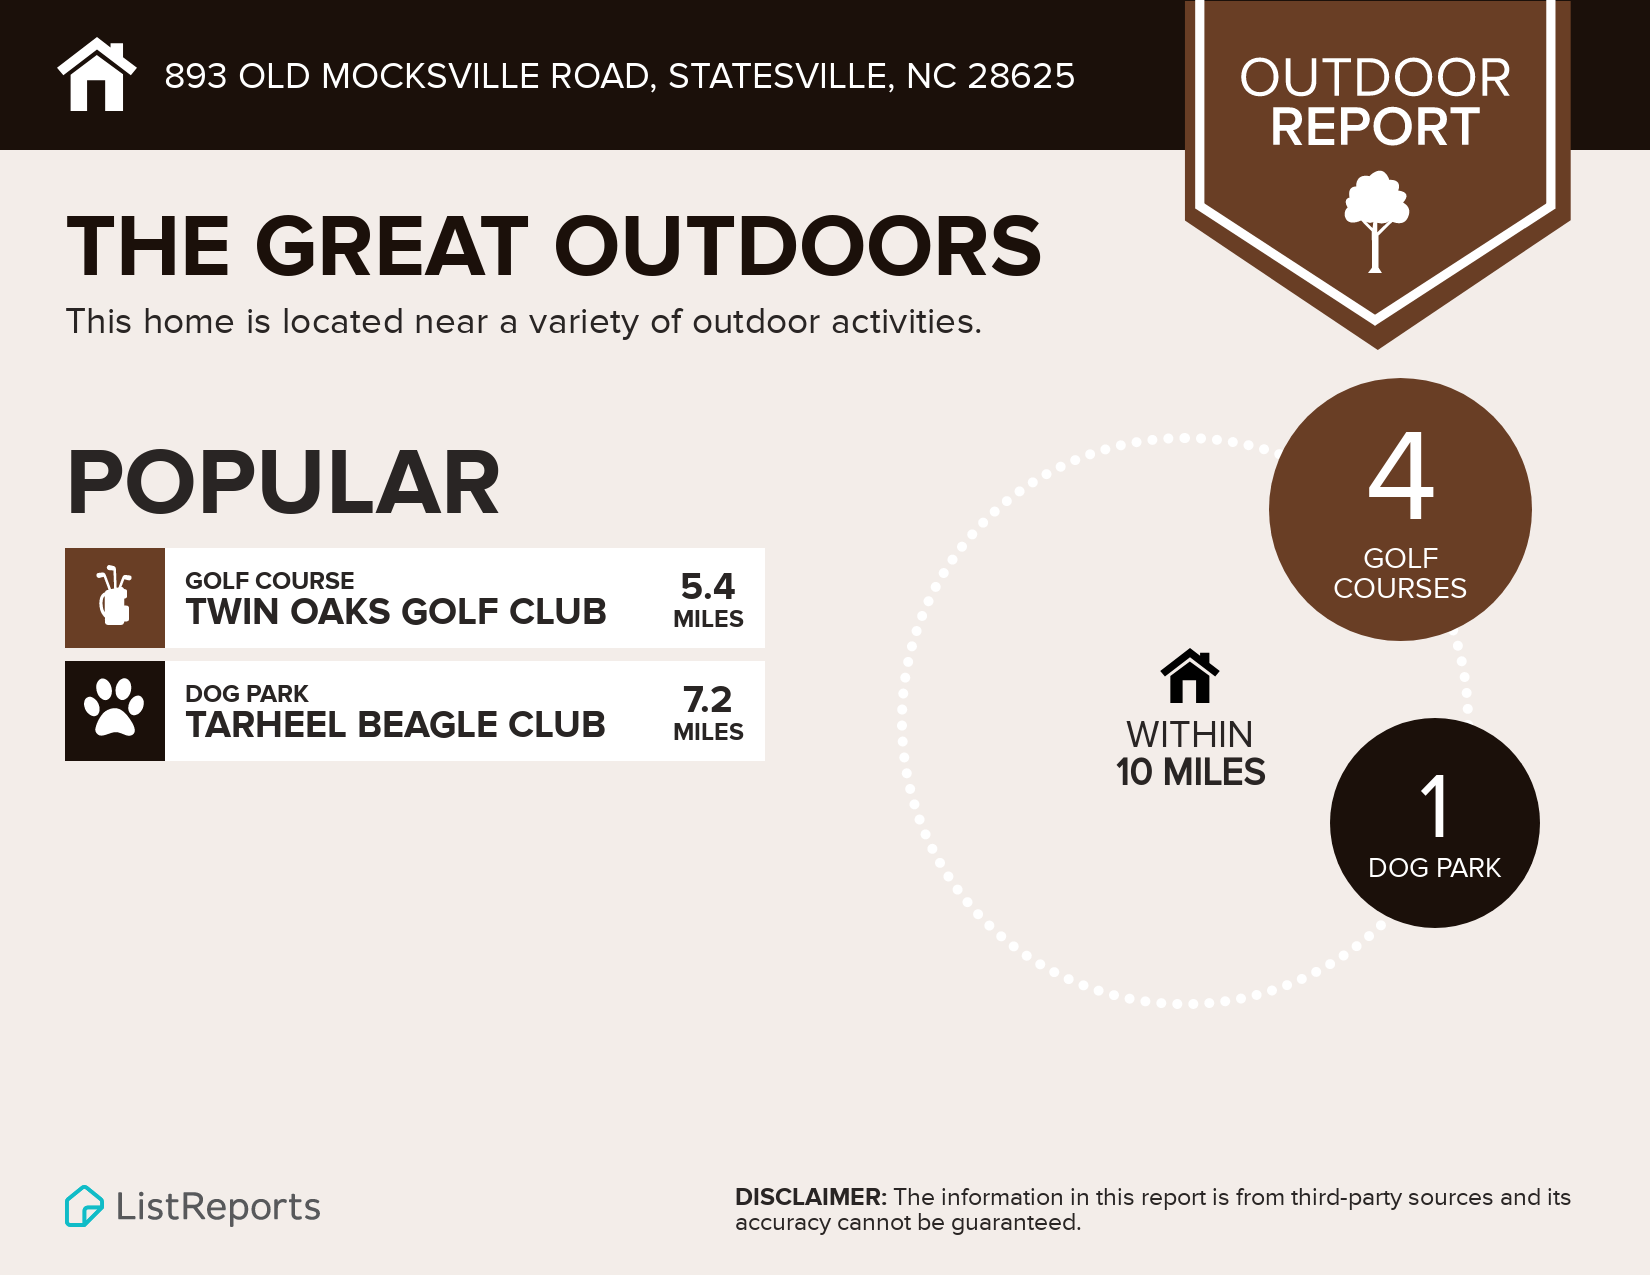 893 Old Mocksville Rd. Outdoors Infographic